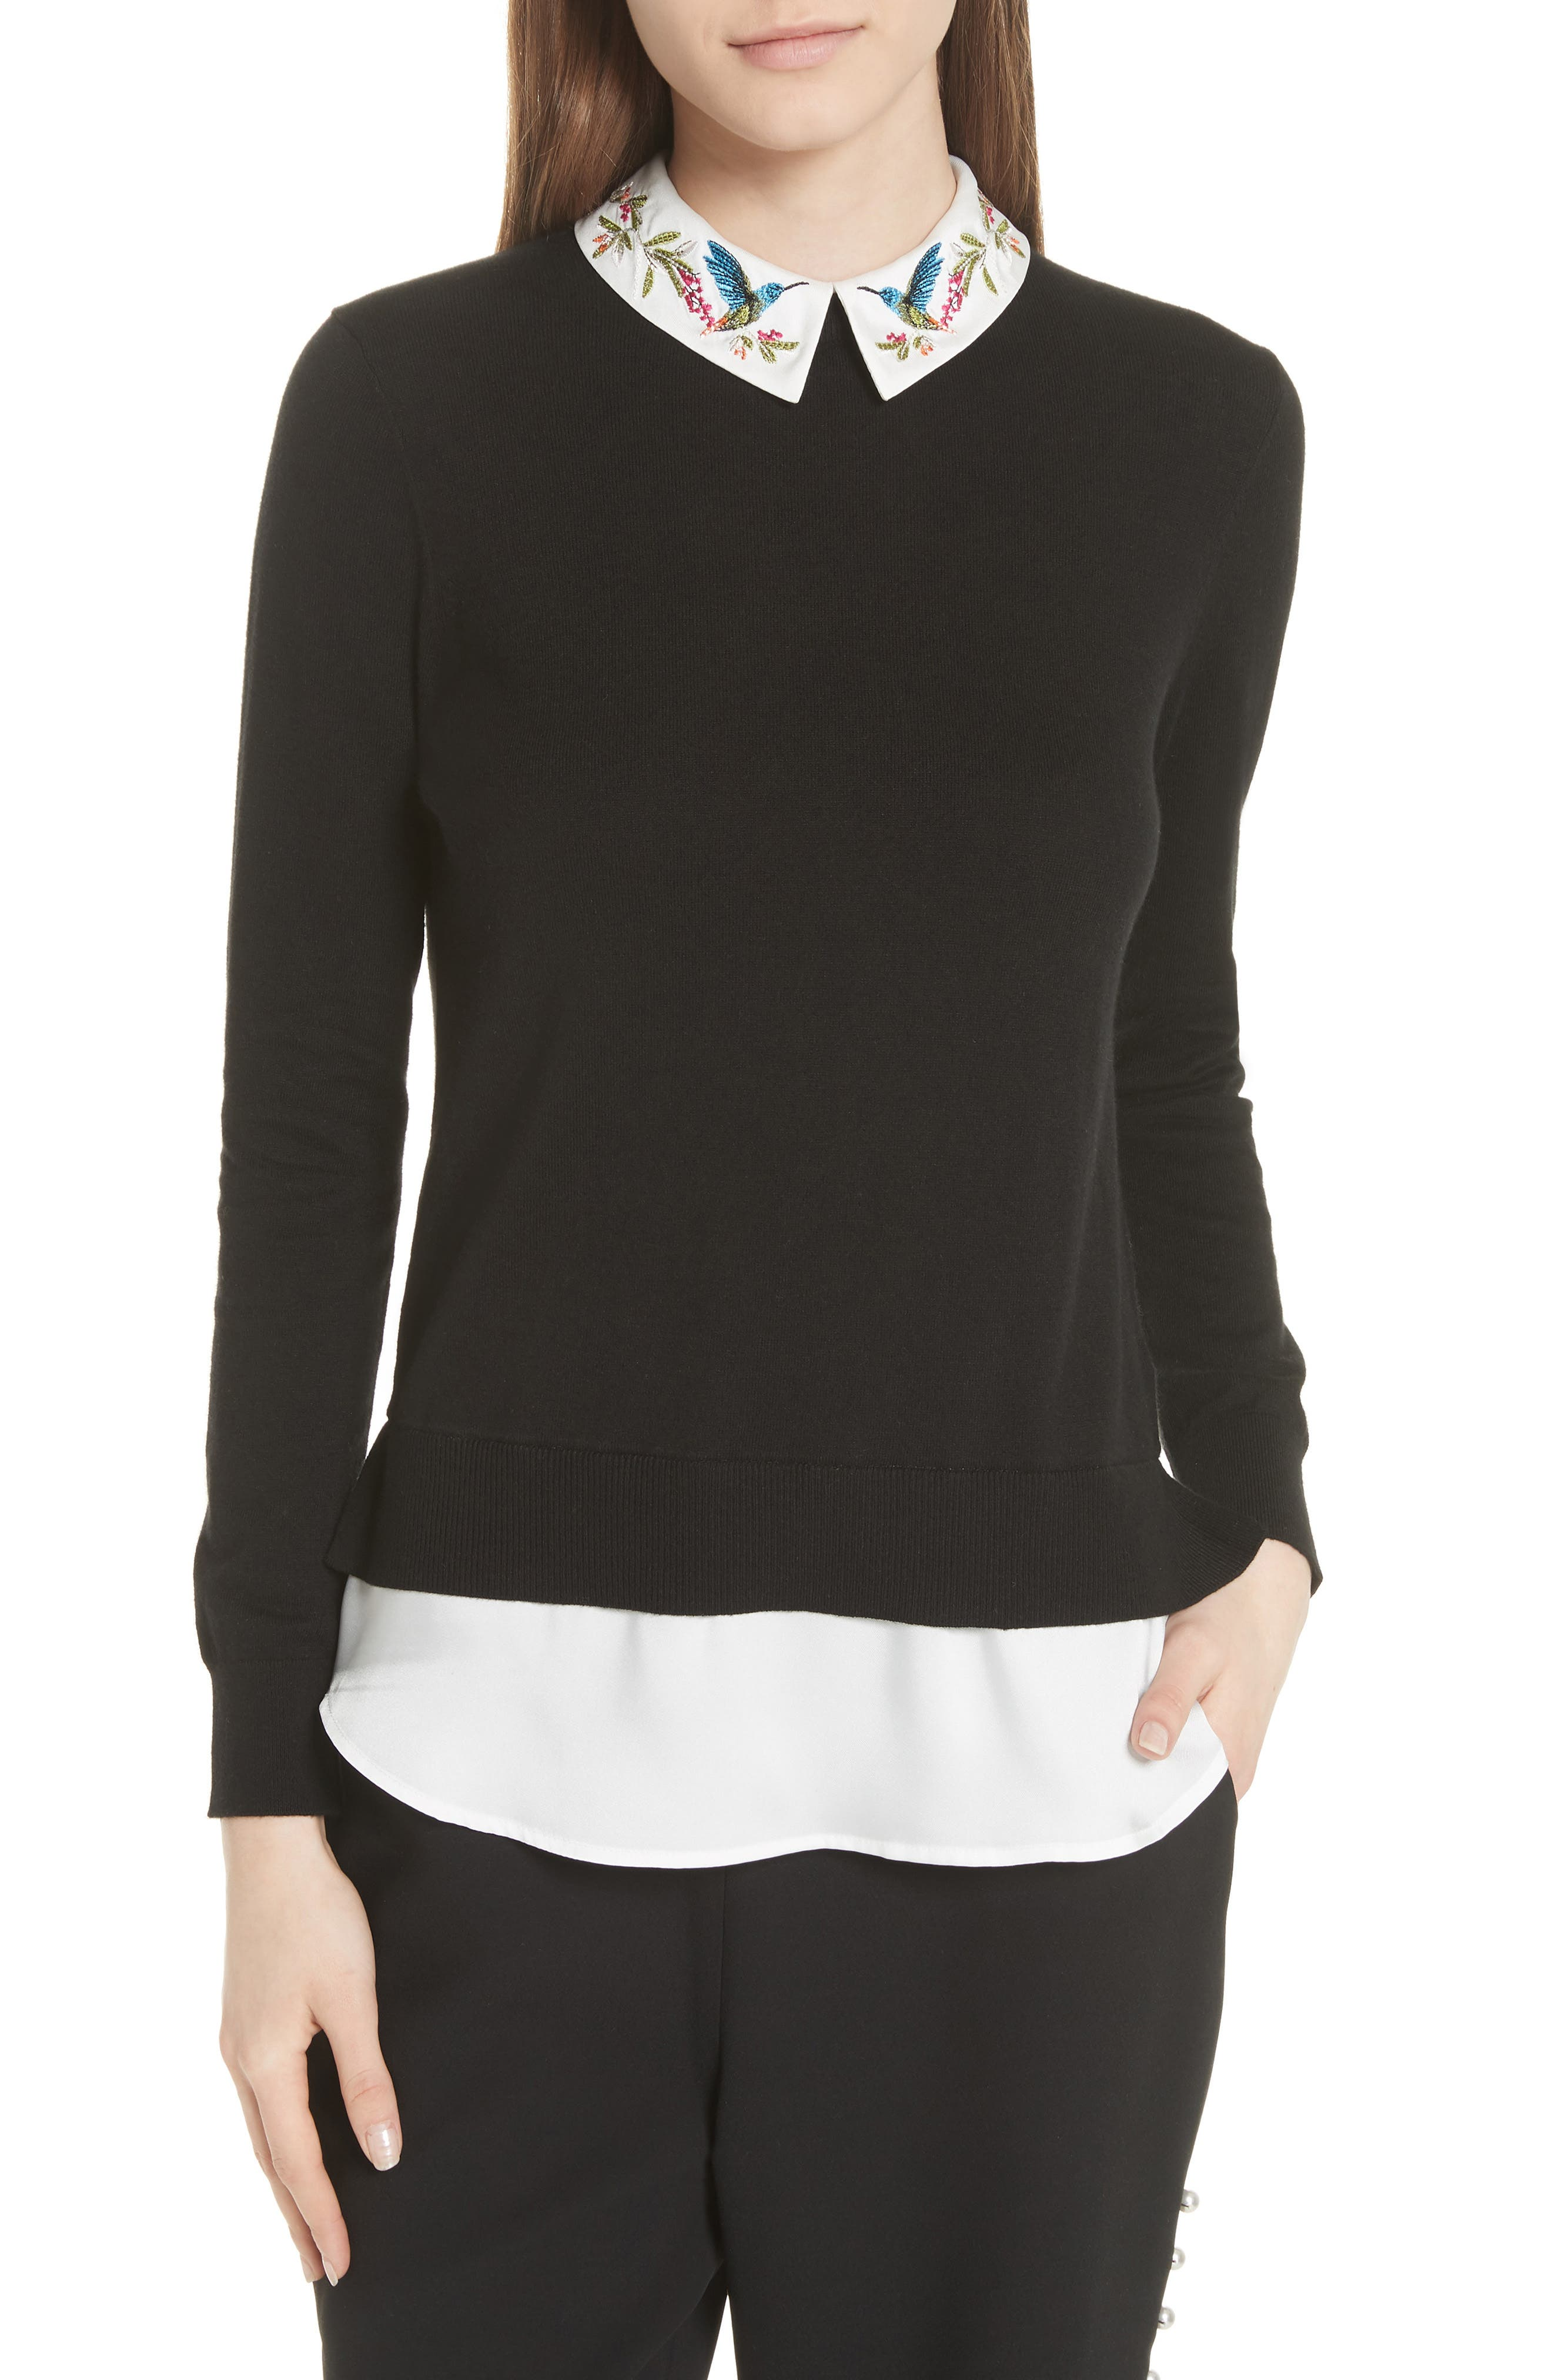 Highgrove Layered Look Sweater,                         Main,                         color,